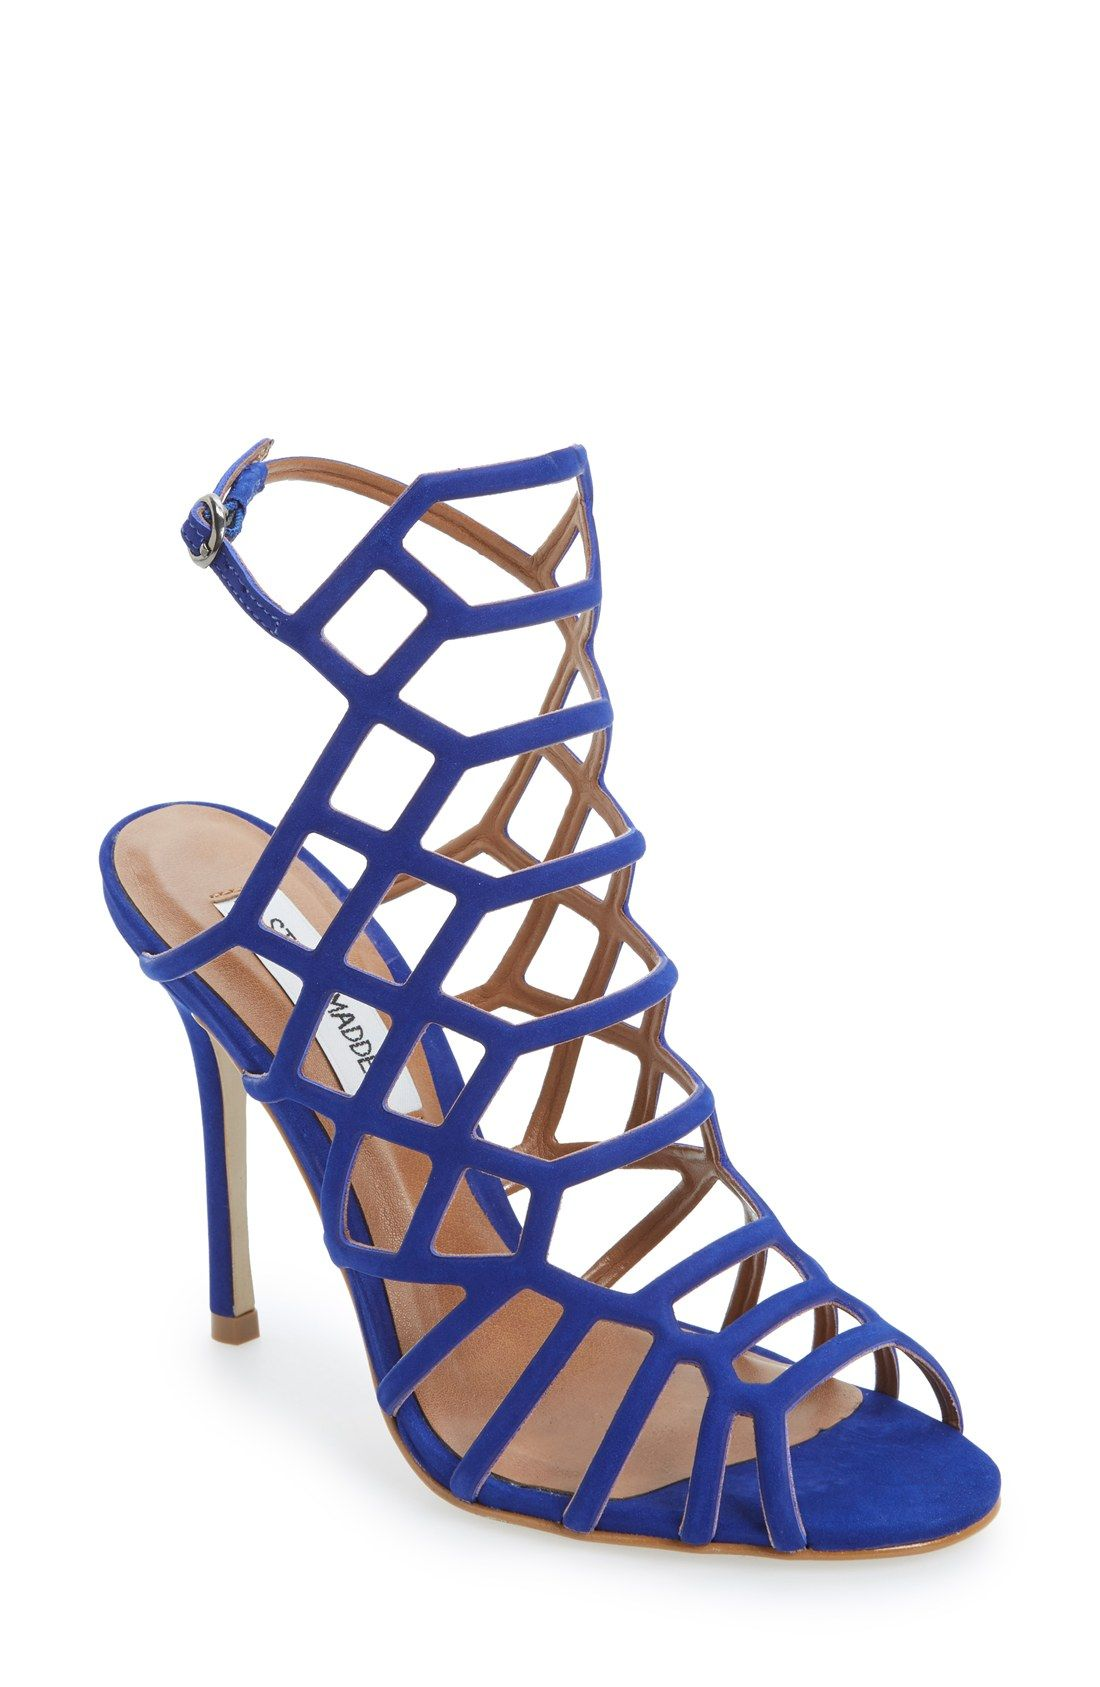 These Steve Madden 'Slithur' sandals sandals sandals in 'blu Nubuck' are a must   0803fa